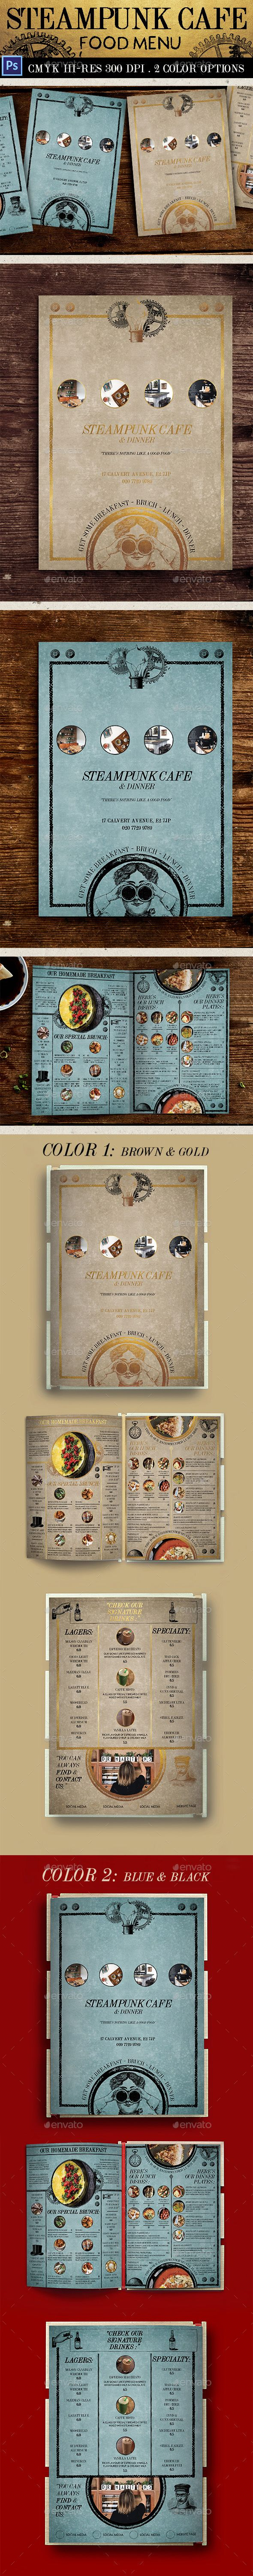 Steampunk Cafe Food Menu — Photoshop PSD #steampunk menu #menu • Available here → https://graphicriver.net/item/steampunk-cafe-food-menu/16919255?ref=pxcr